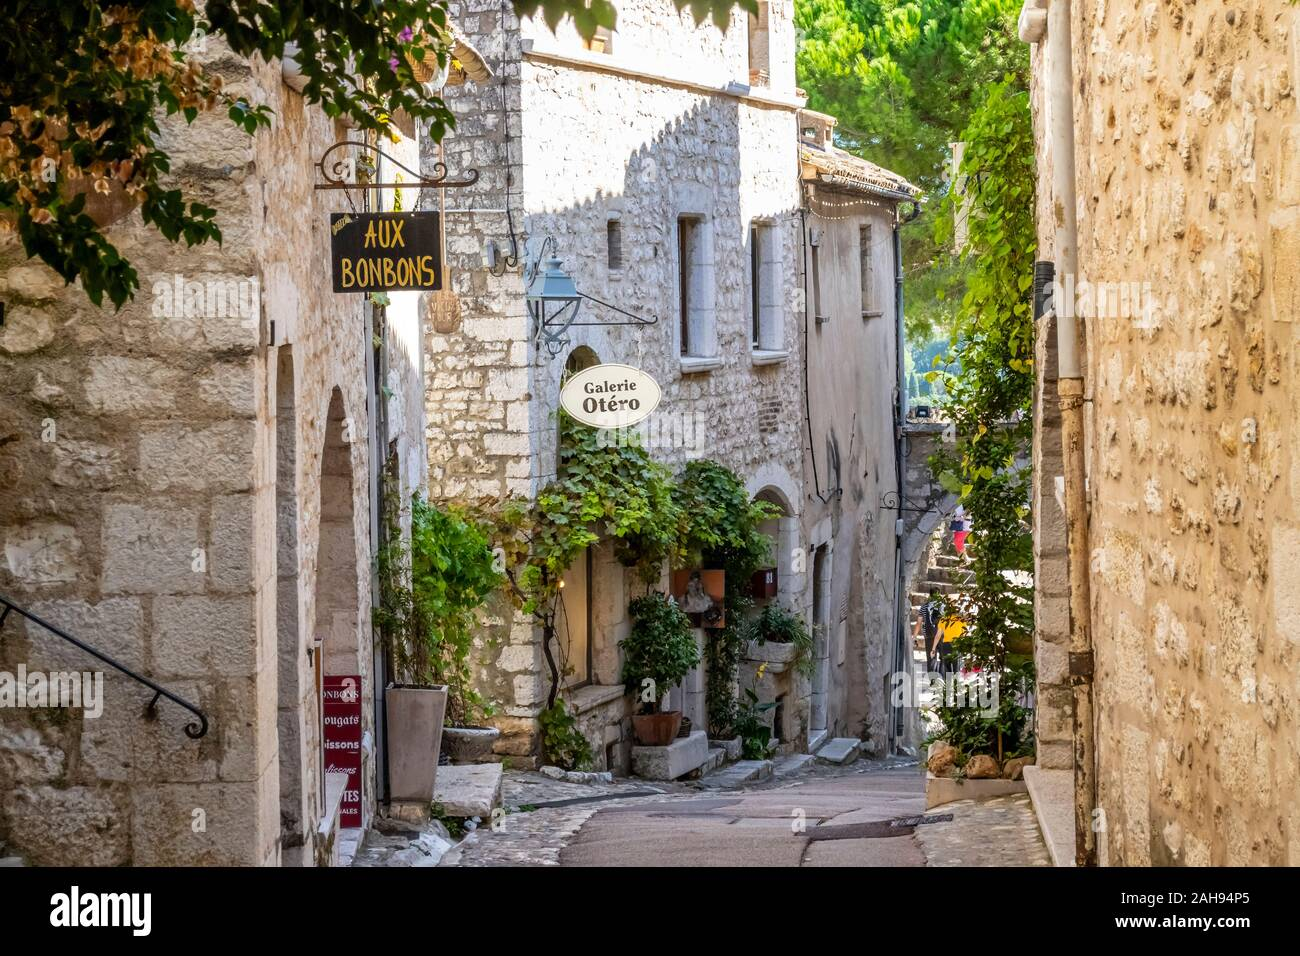 Shops and art galleries line the narrow cobblestone roads in the medieval hilltop village of St Paul de Vance on the French Riviera. Stock Photo